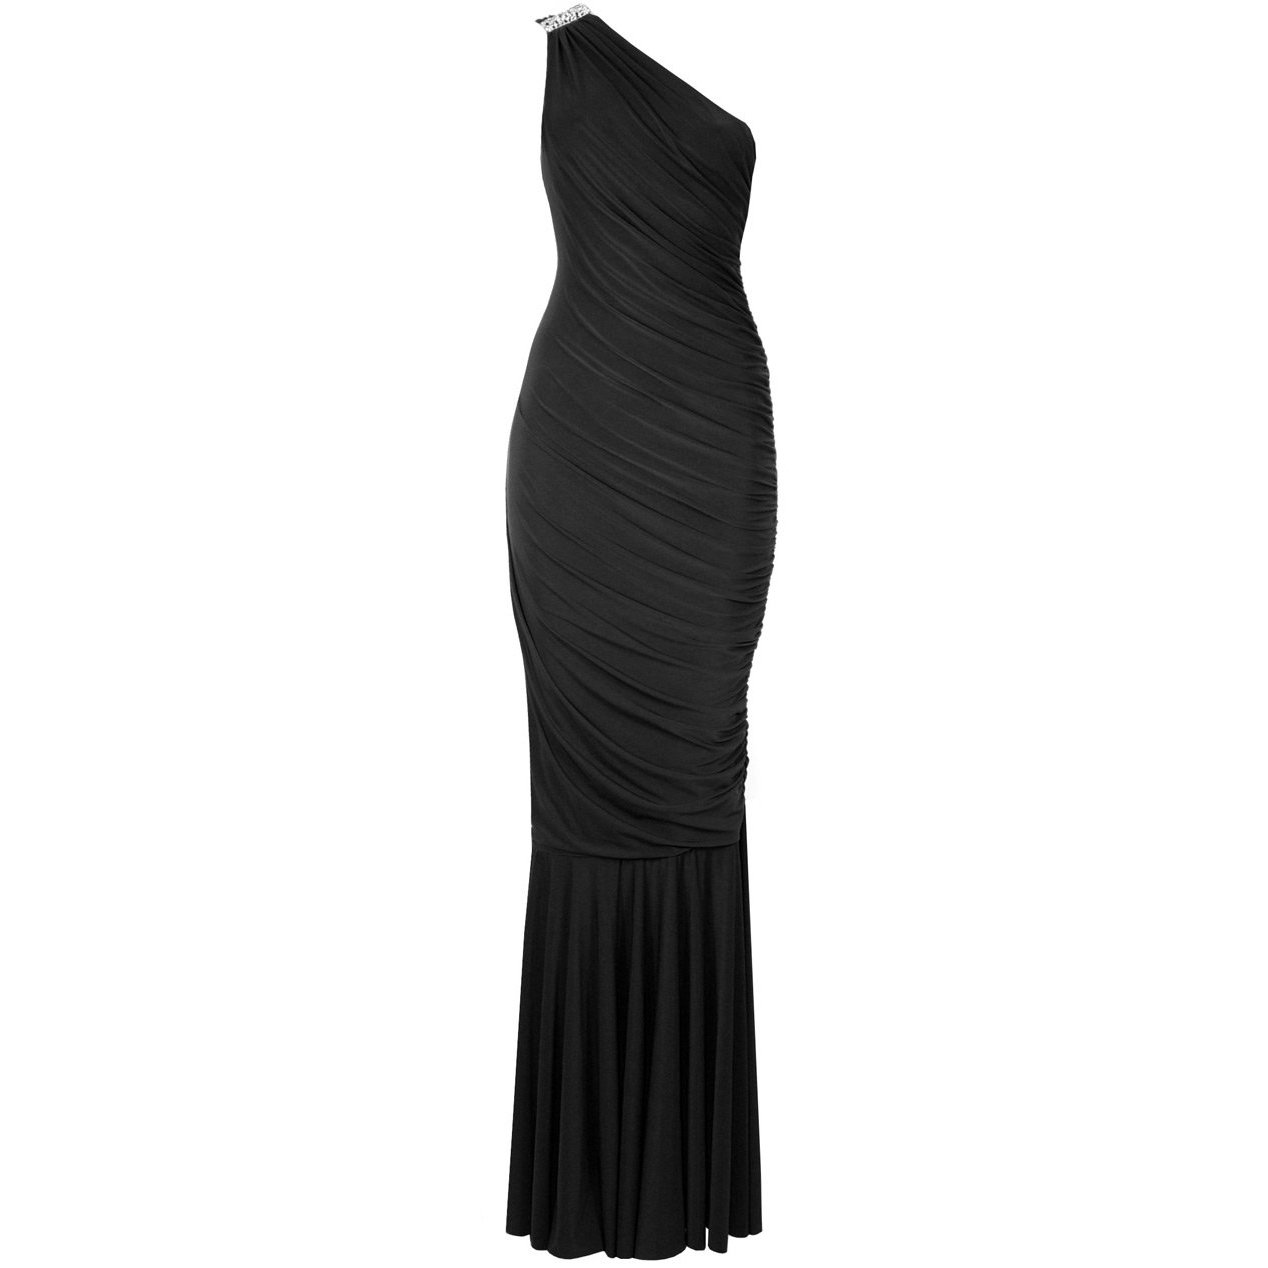 WOMENS NEW BLACK ONE SHOULDER GRECIAN LONG EVENING FISHTAIL MAXI PROM GOWN DRESS UK 8-10, US 4-6